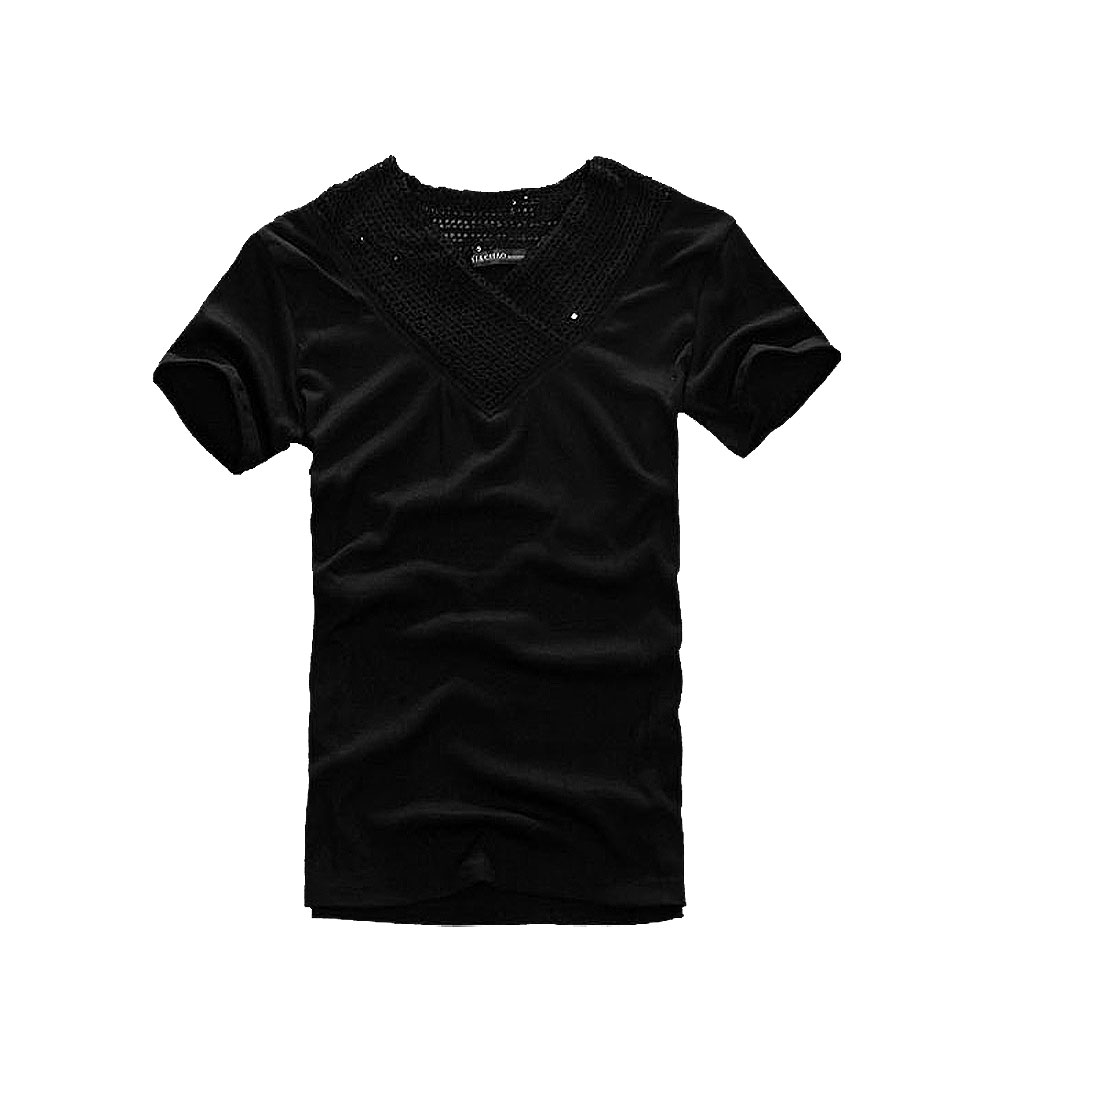 Men V Neck Pullover Short Sleeve Sequin Decor Casual T-shirt Black S